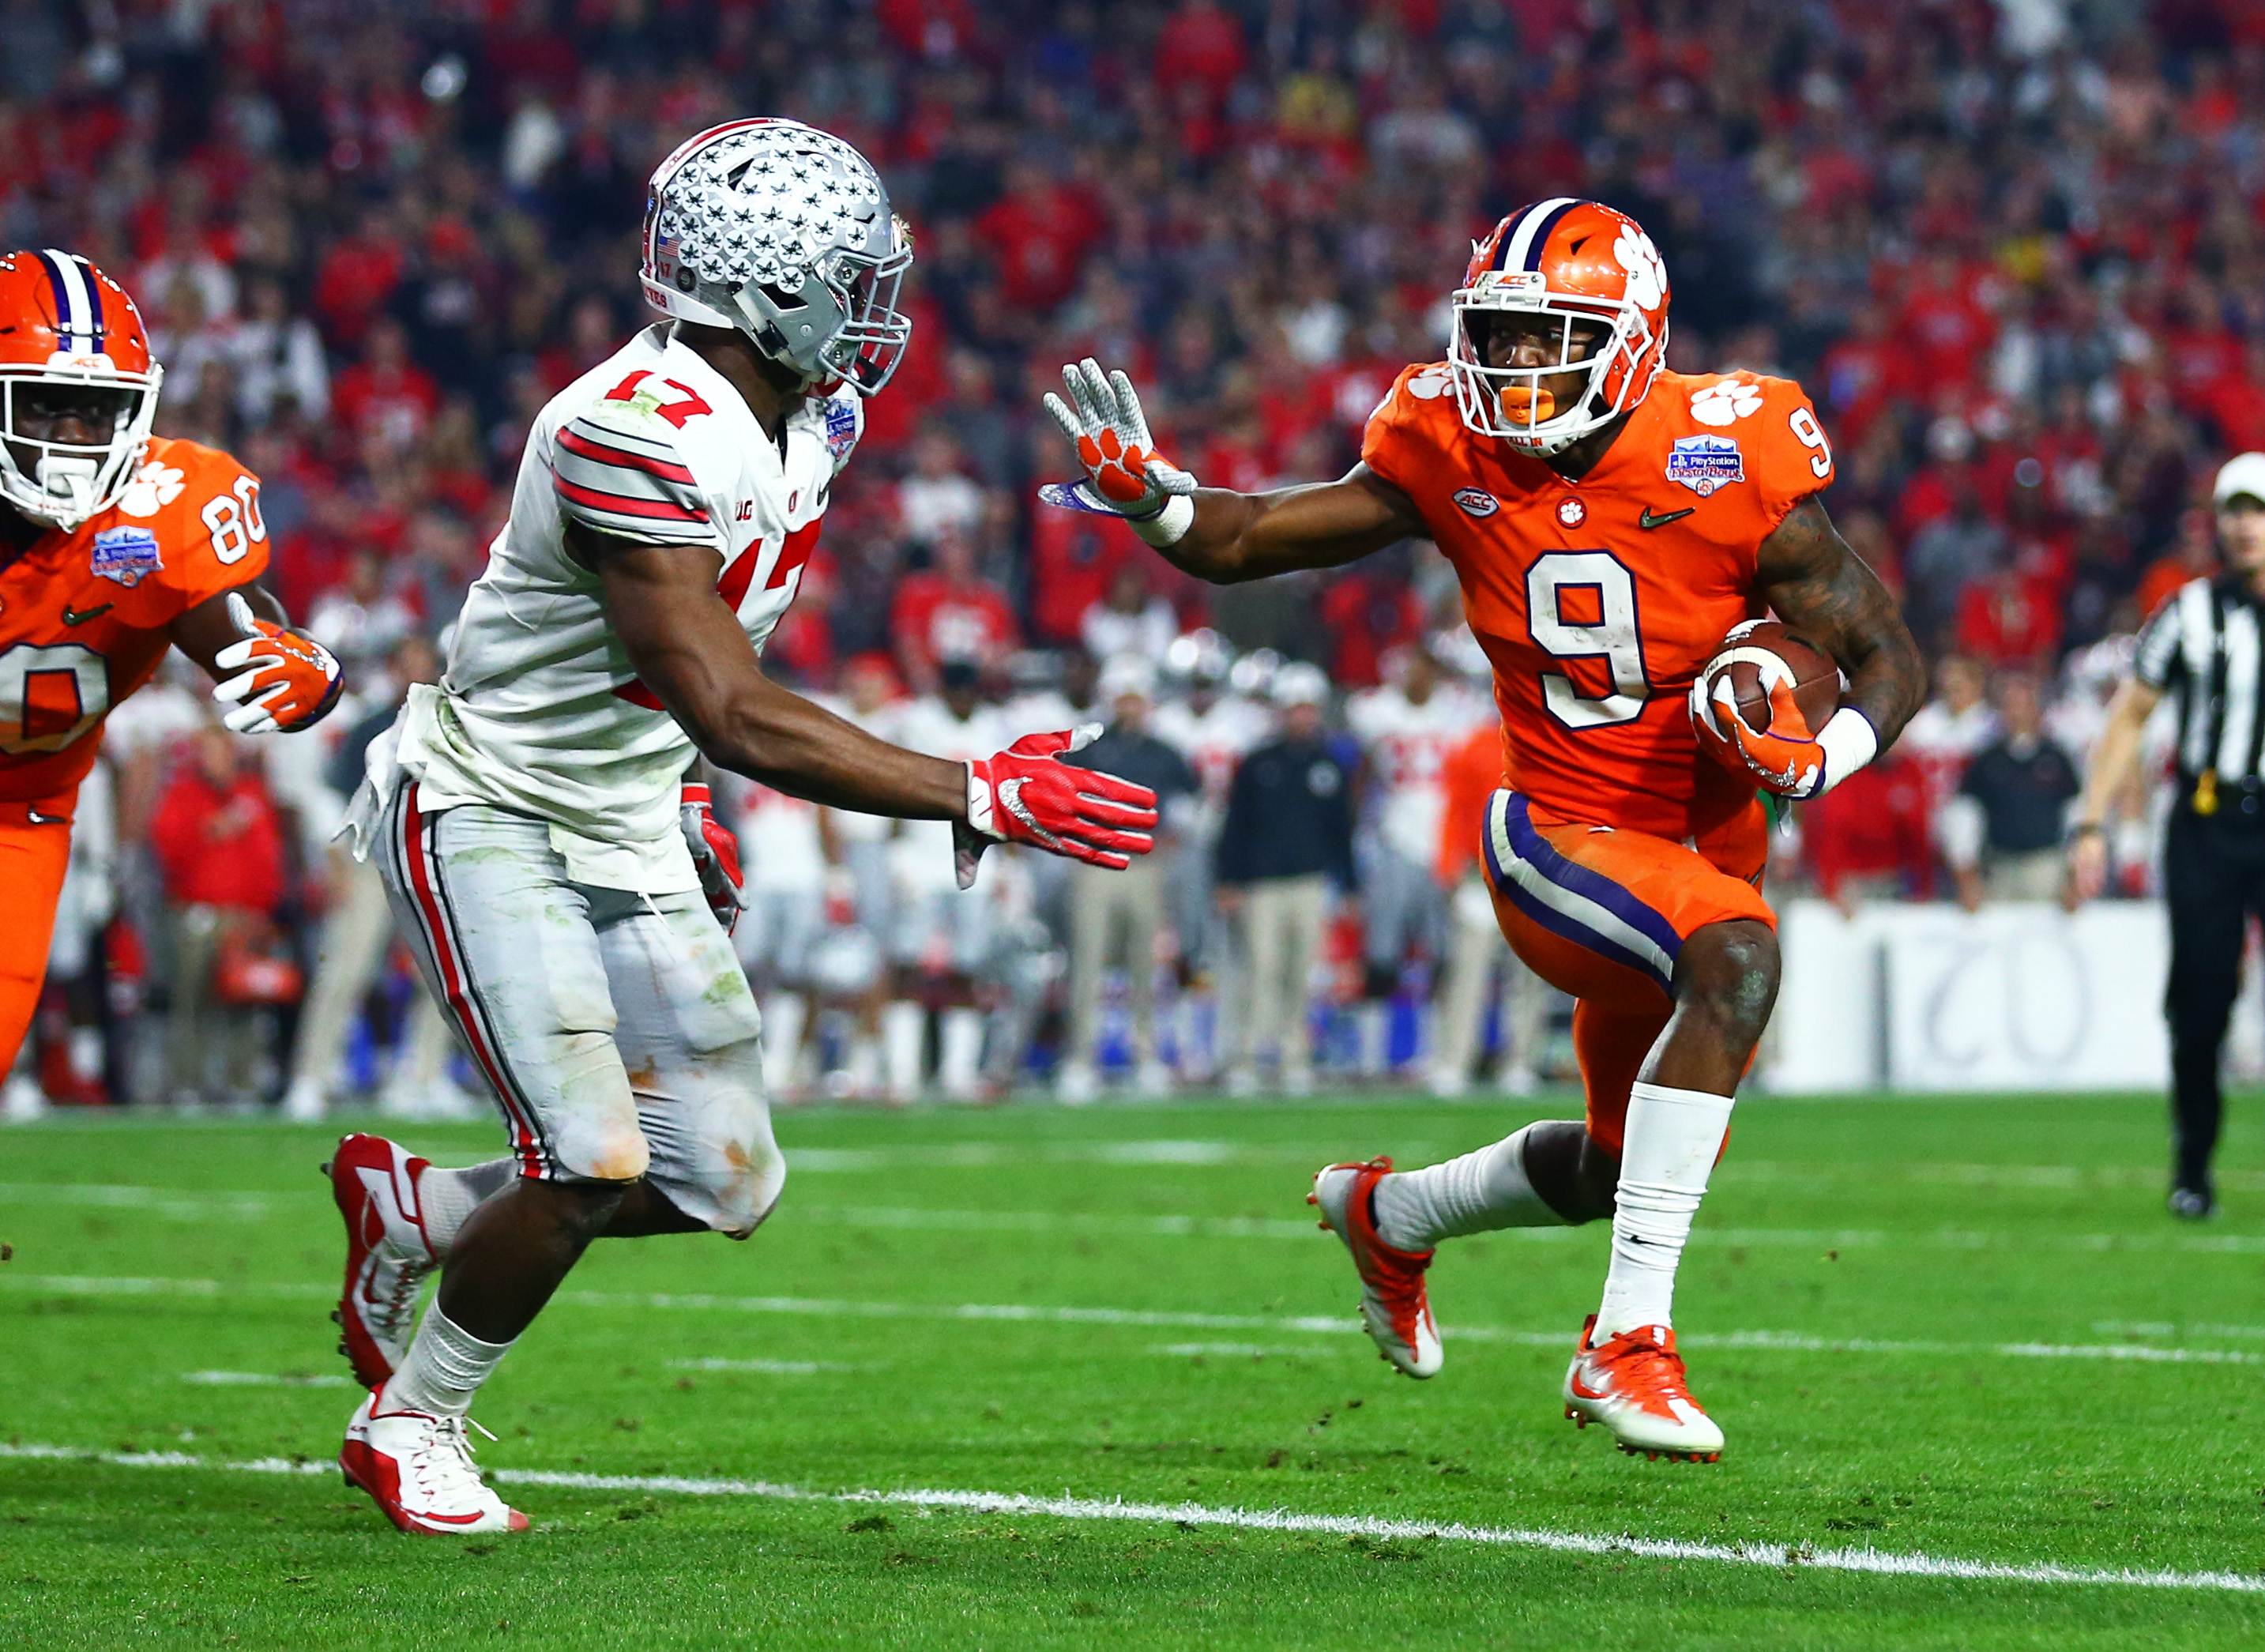 December 31, 2016; Glendale, AZ, USA; Clemson Tigers running back Wayne Gallman (9) runs the ball against Ohio State Buckeyes linebacker Jerome Baker (17) in the 2016 CFP semifinal at University of Phoenix Stadium. Mandatory Credit: Mark J. Rebilas-USA TODAY Sports